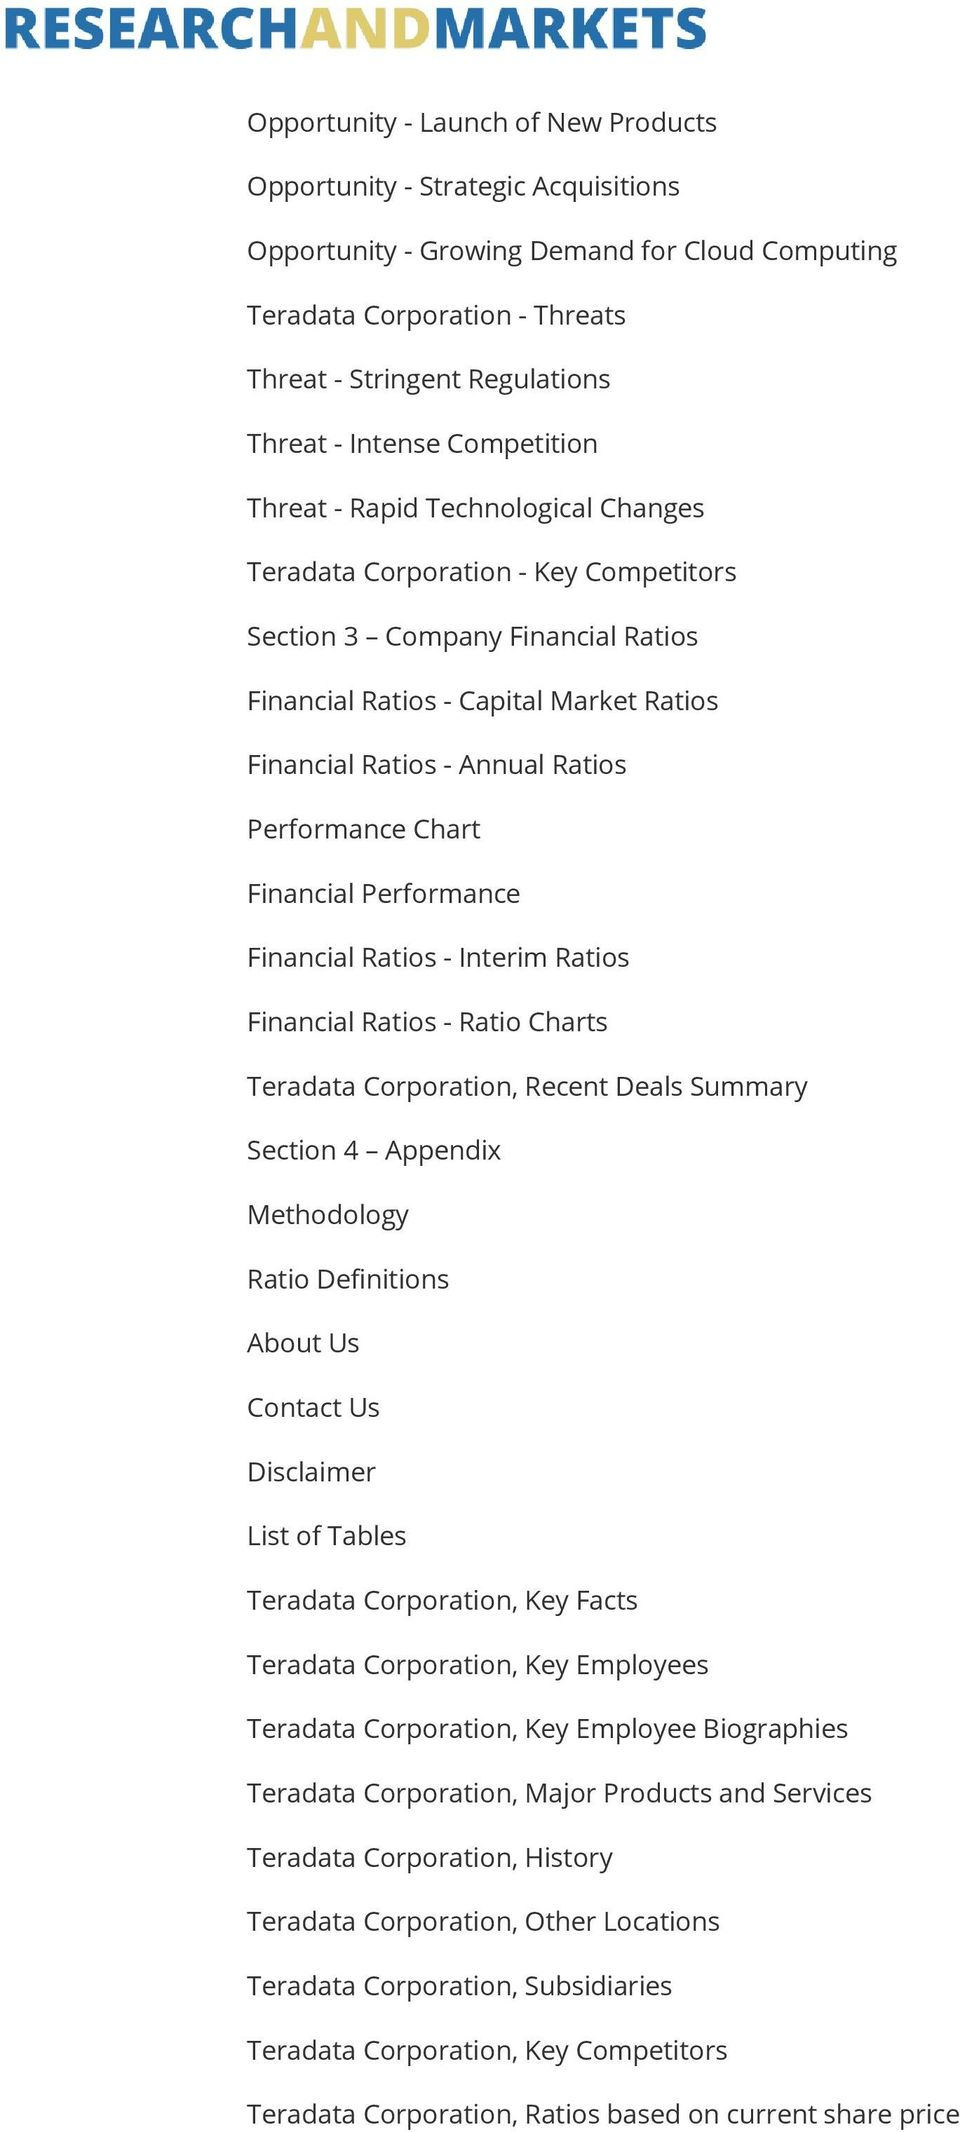 Ratios Performance Chart Financial Performance Financial Ratios - Interim Ratios Financial Ratios - Ratio Charts Teradata Corporation, Recent Deals Summary Section 4 Appendix Methodology Ratio